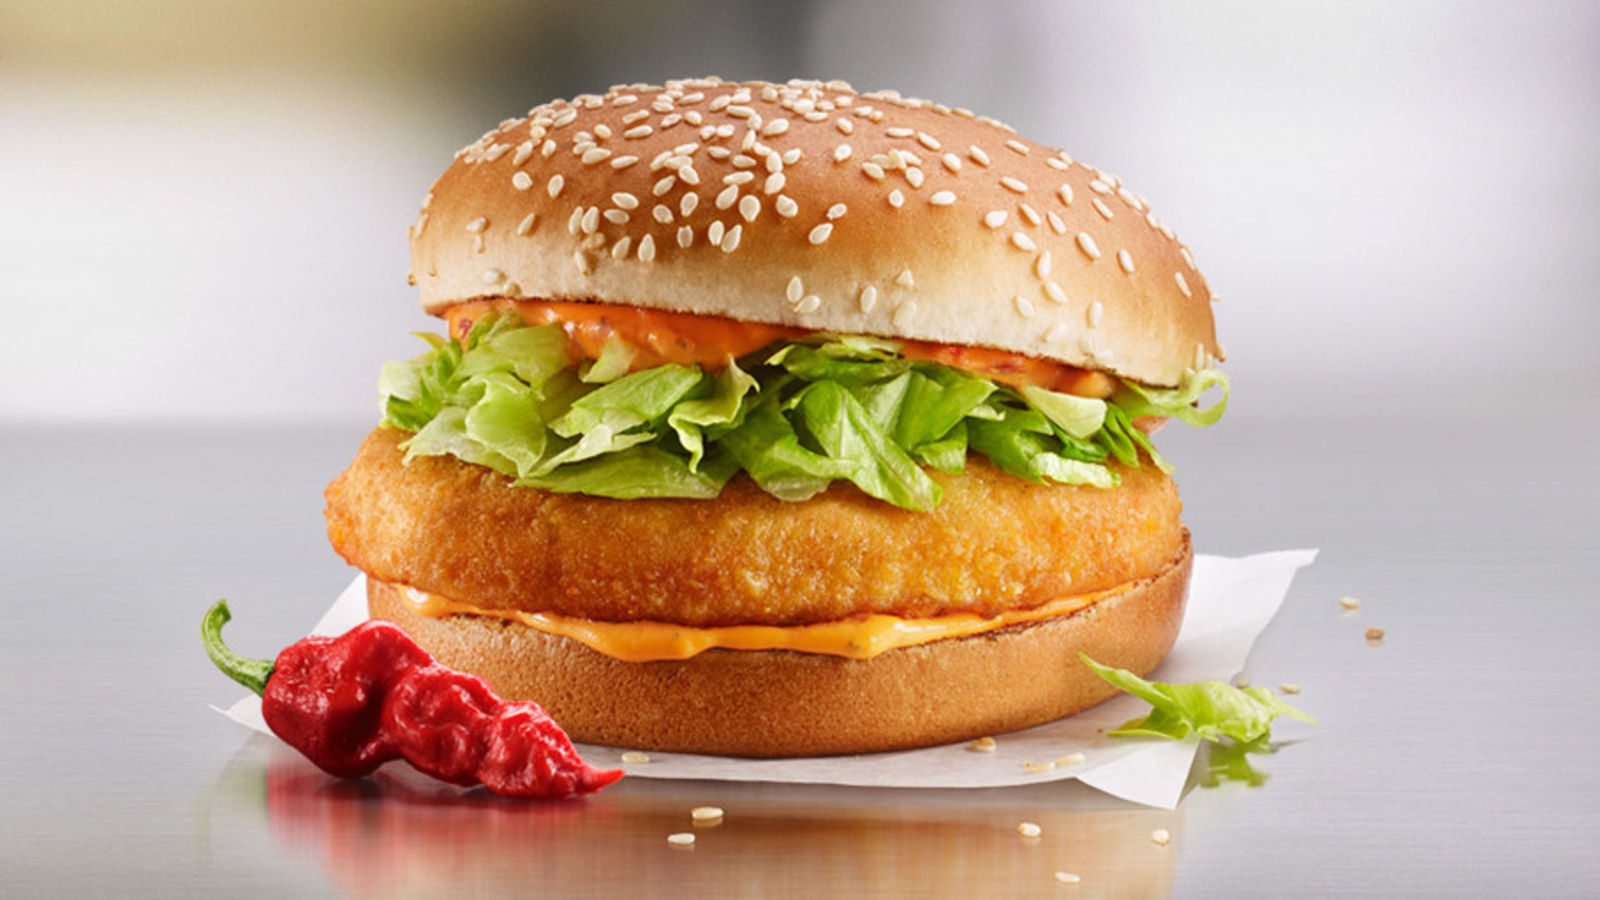 McDonald's Made Three New Spicy McChickens With Different Levels of Heat